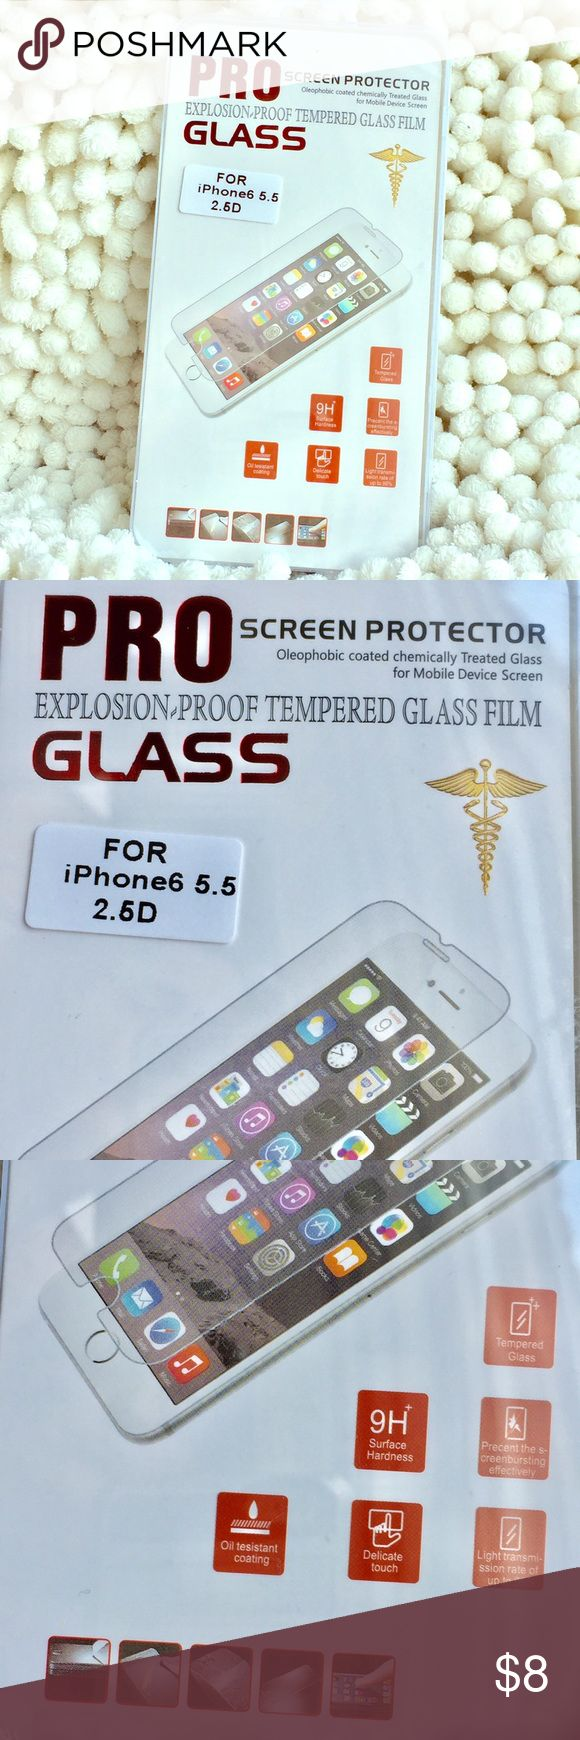 iPhone 6/6s/7/8 Plus Tempered Screen Protector COMPARE PRICES!! THIS IS AN UNBELIEVABLE OFFER!! Premium quality tempered glass screen protector. Top of the line surface hardness. Protects your phone's glass from scratches and bumps. Designed to absorb impact, a must for all iPhone users. Pls check proper fit in my last pic. Bundle with a card case in your favorite color. NO OFFERS ON THIS ITEM PLS. Price is firm! iPhone Accessories Phone Cases